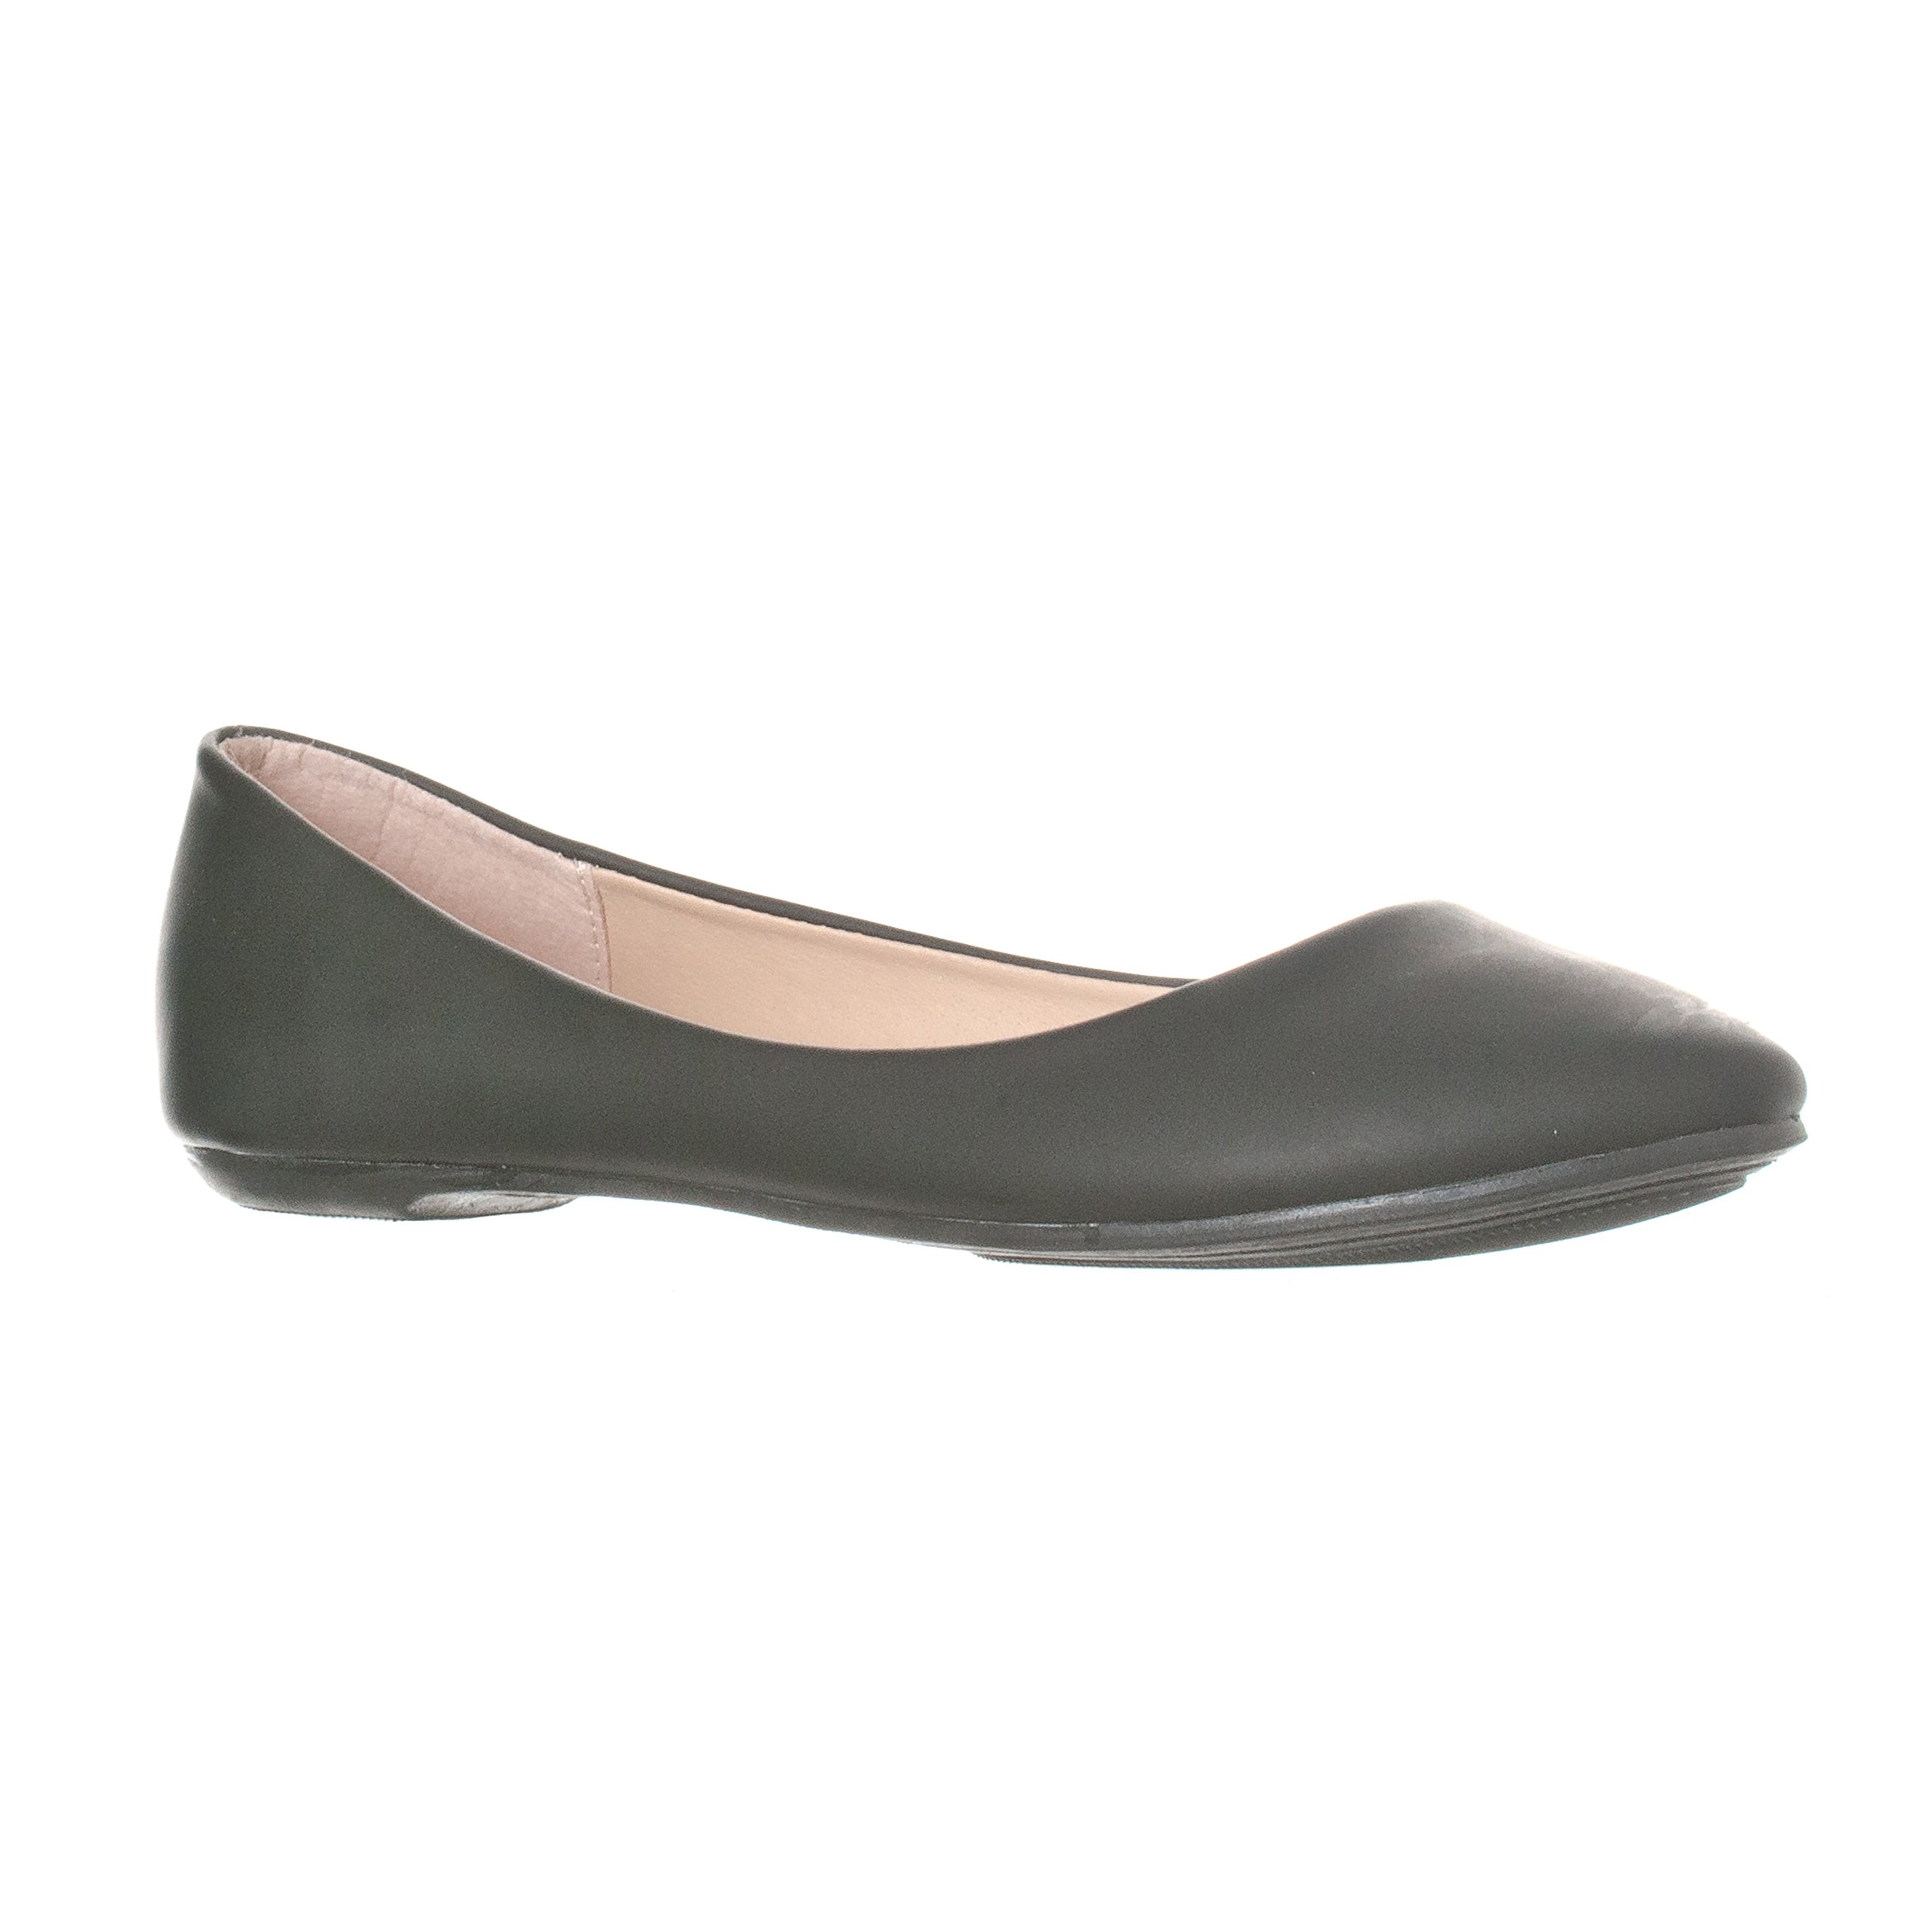 Riverberry Women's Aria Closed, Round Toe Ballet Flat Slip On Shoes, Black PU, 8 by Riverberry (Image #1)